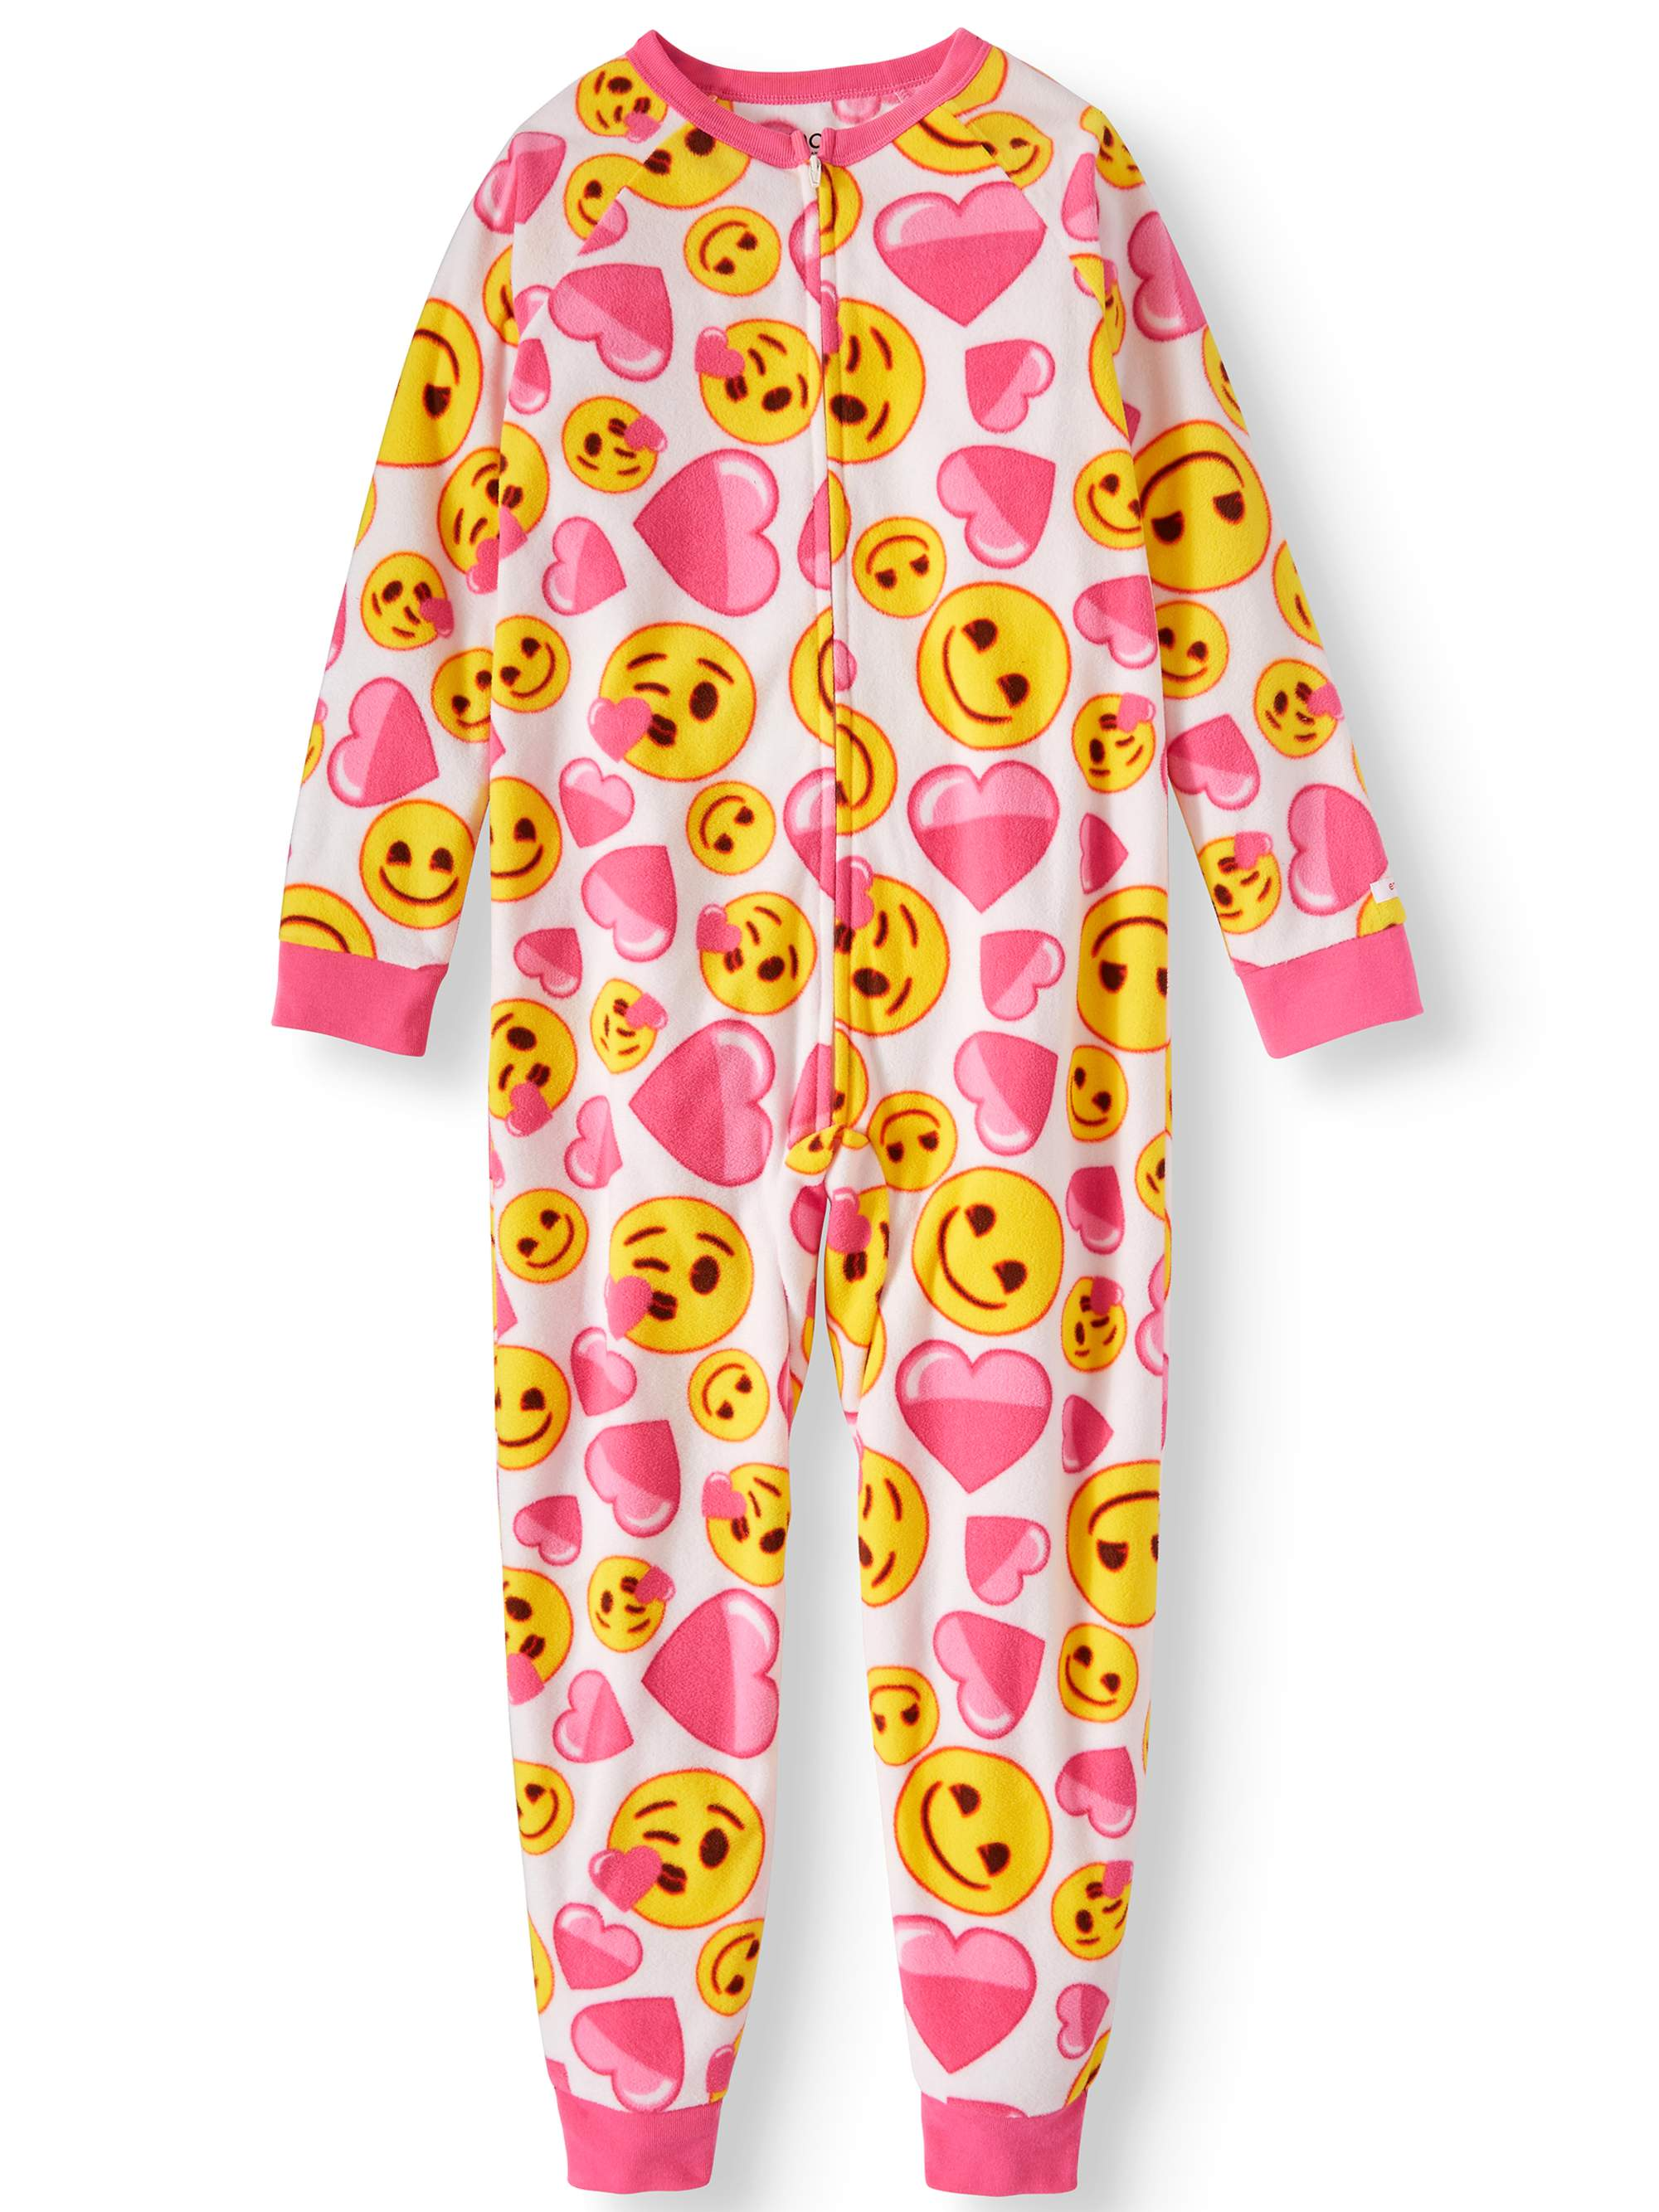 girls onesie pajama sleeper